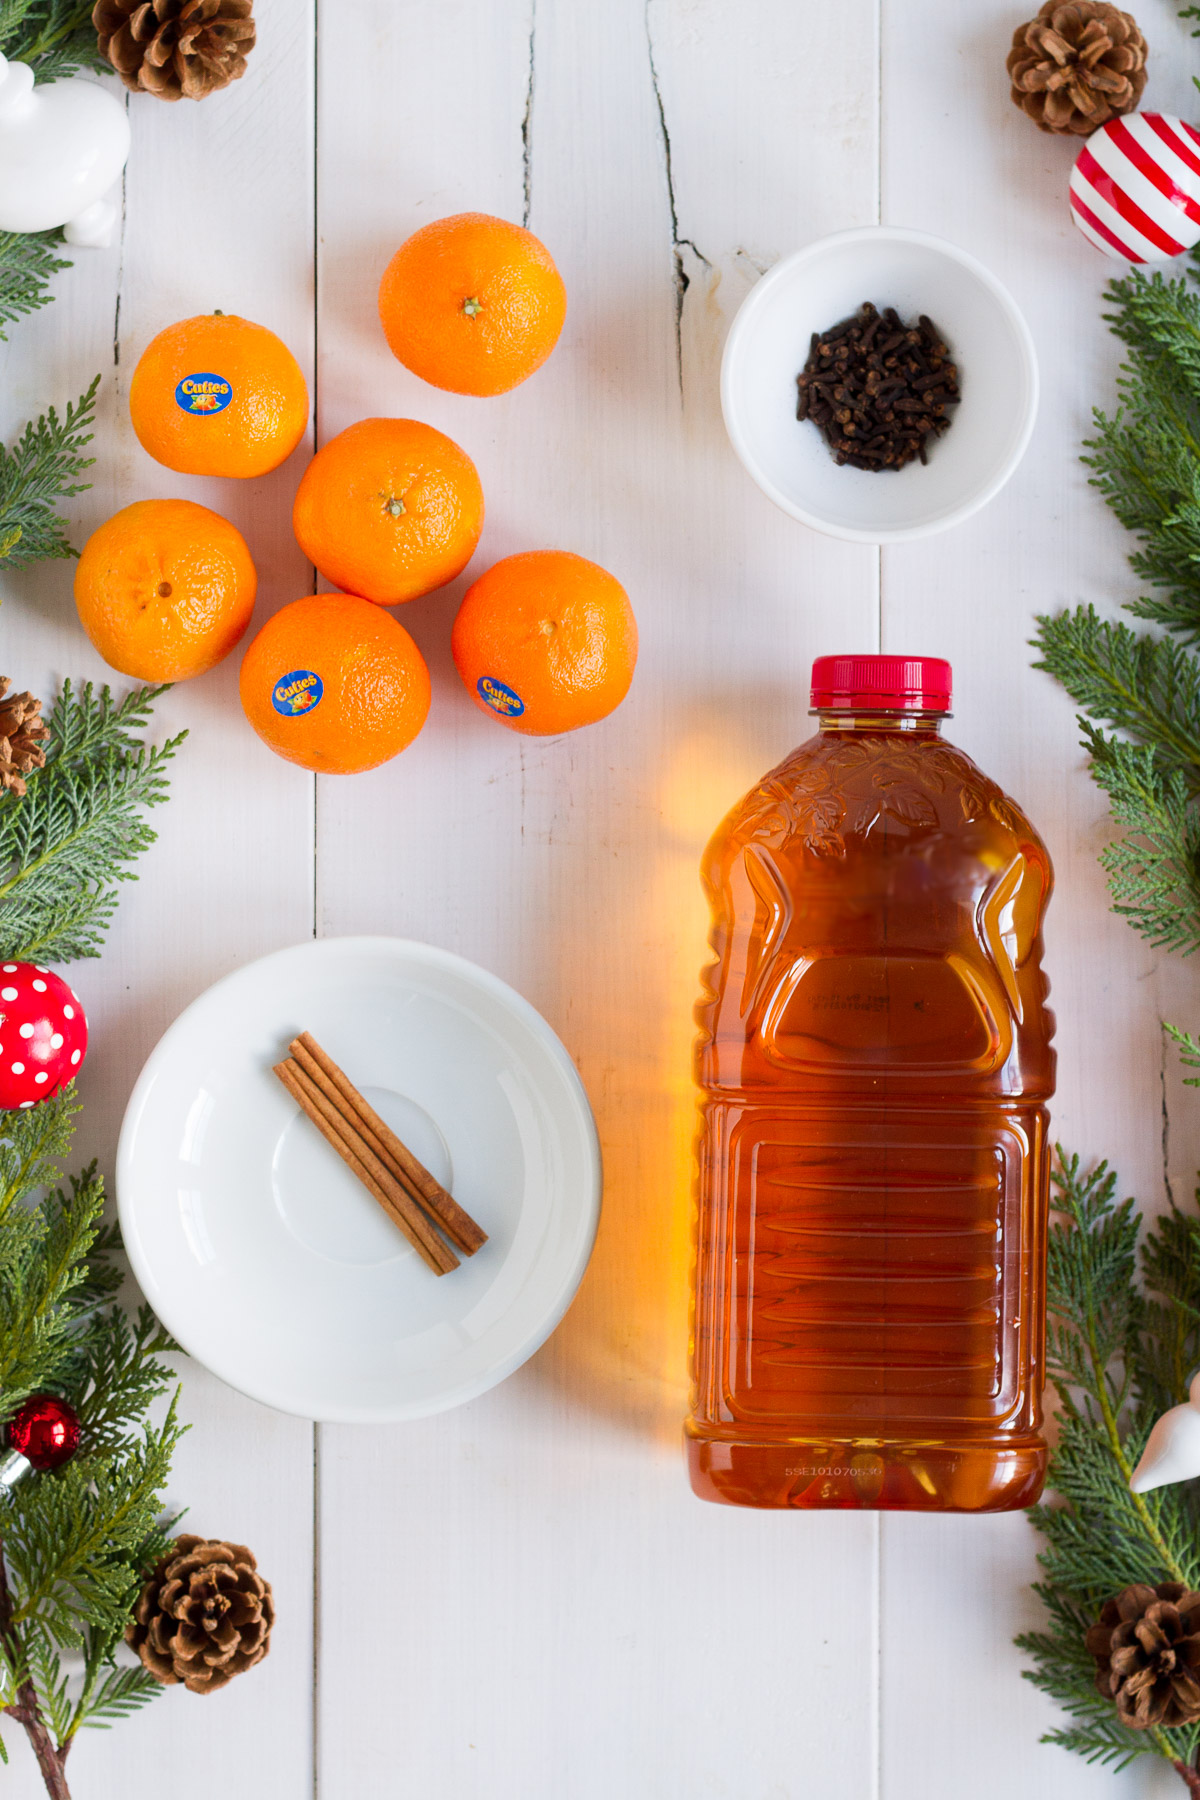 These easy spiced cider with cinnamon, cloves, and cuties is a perfect gift to put together for friends, neighbors, and teachers!